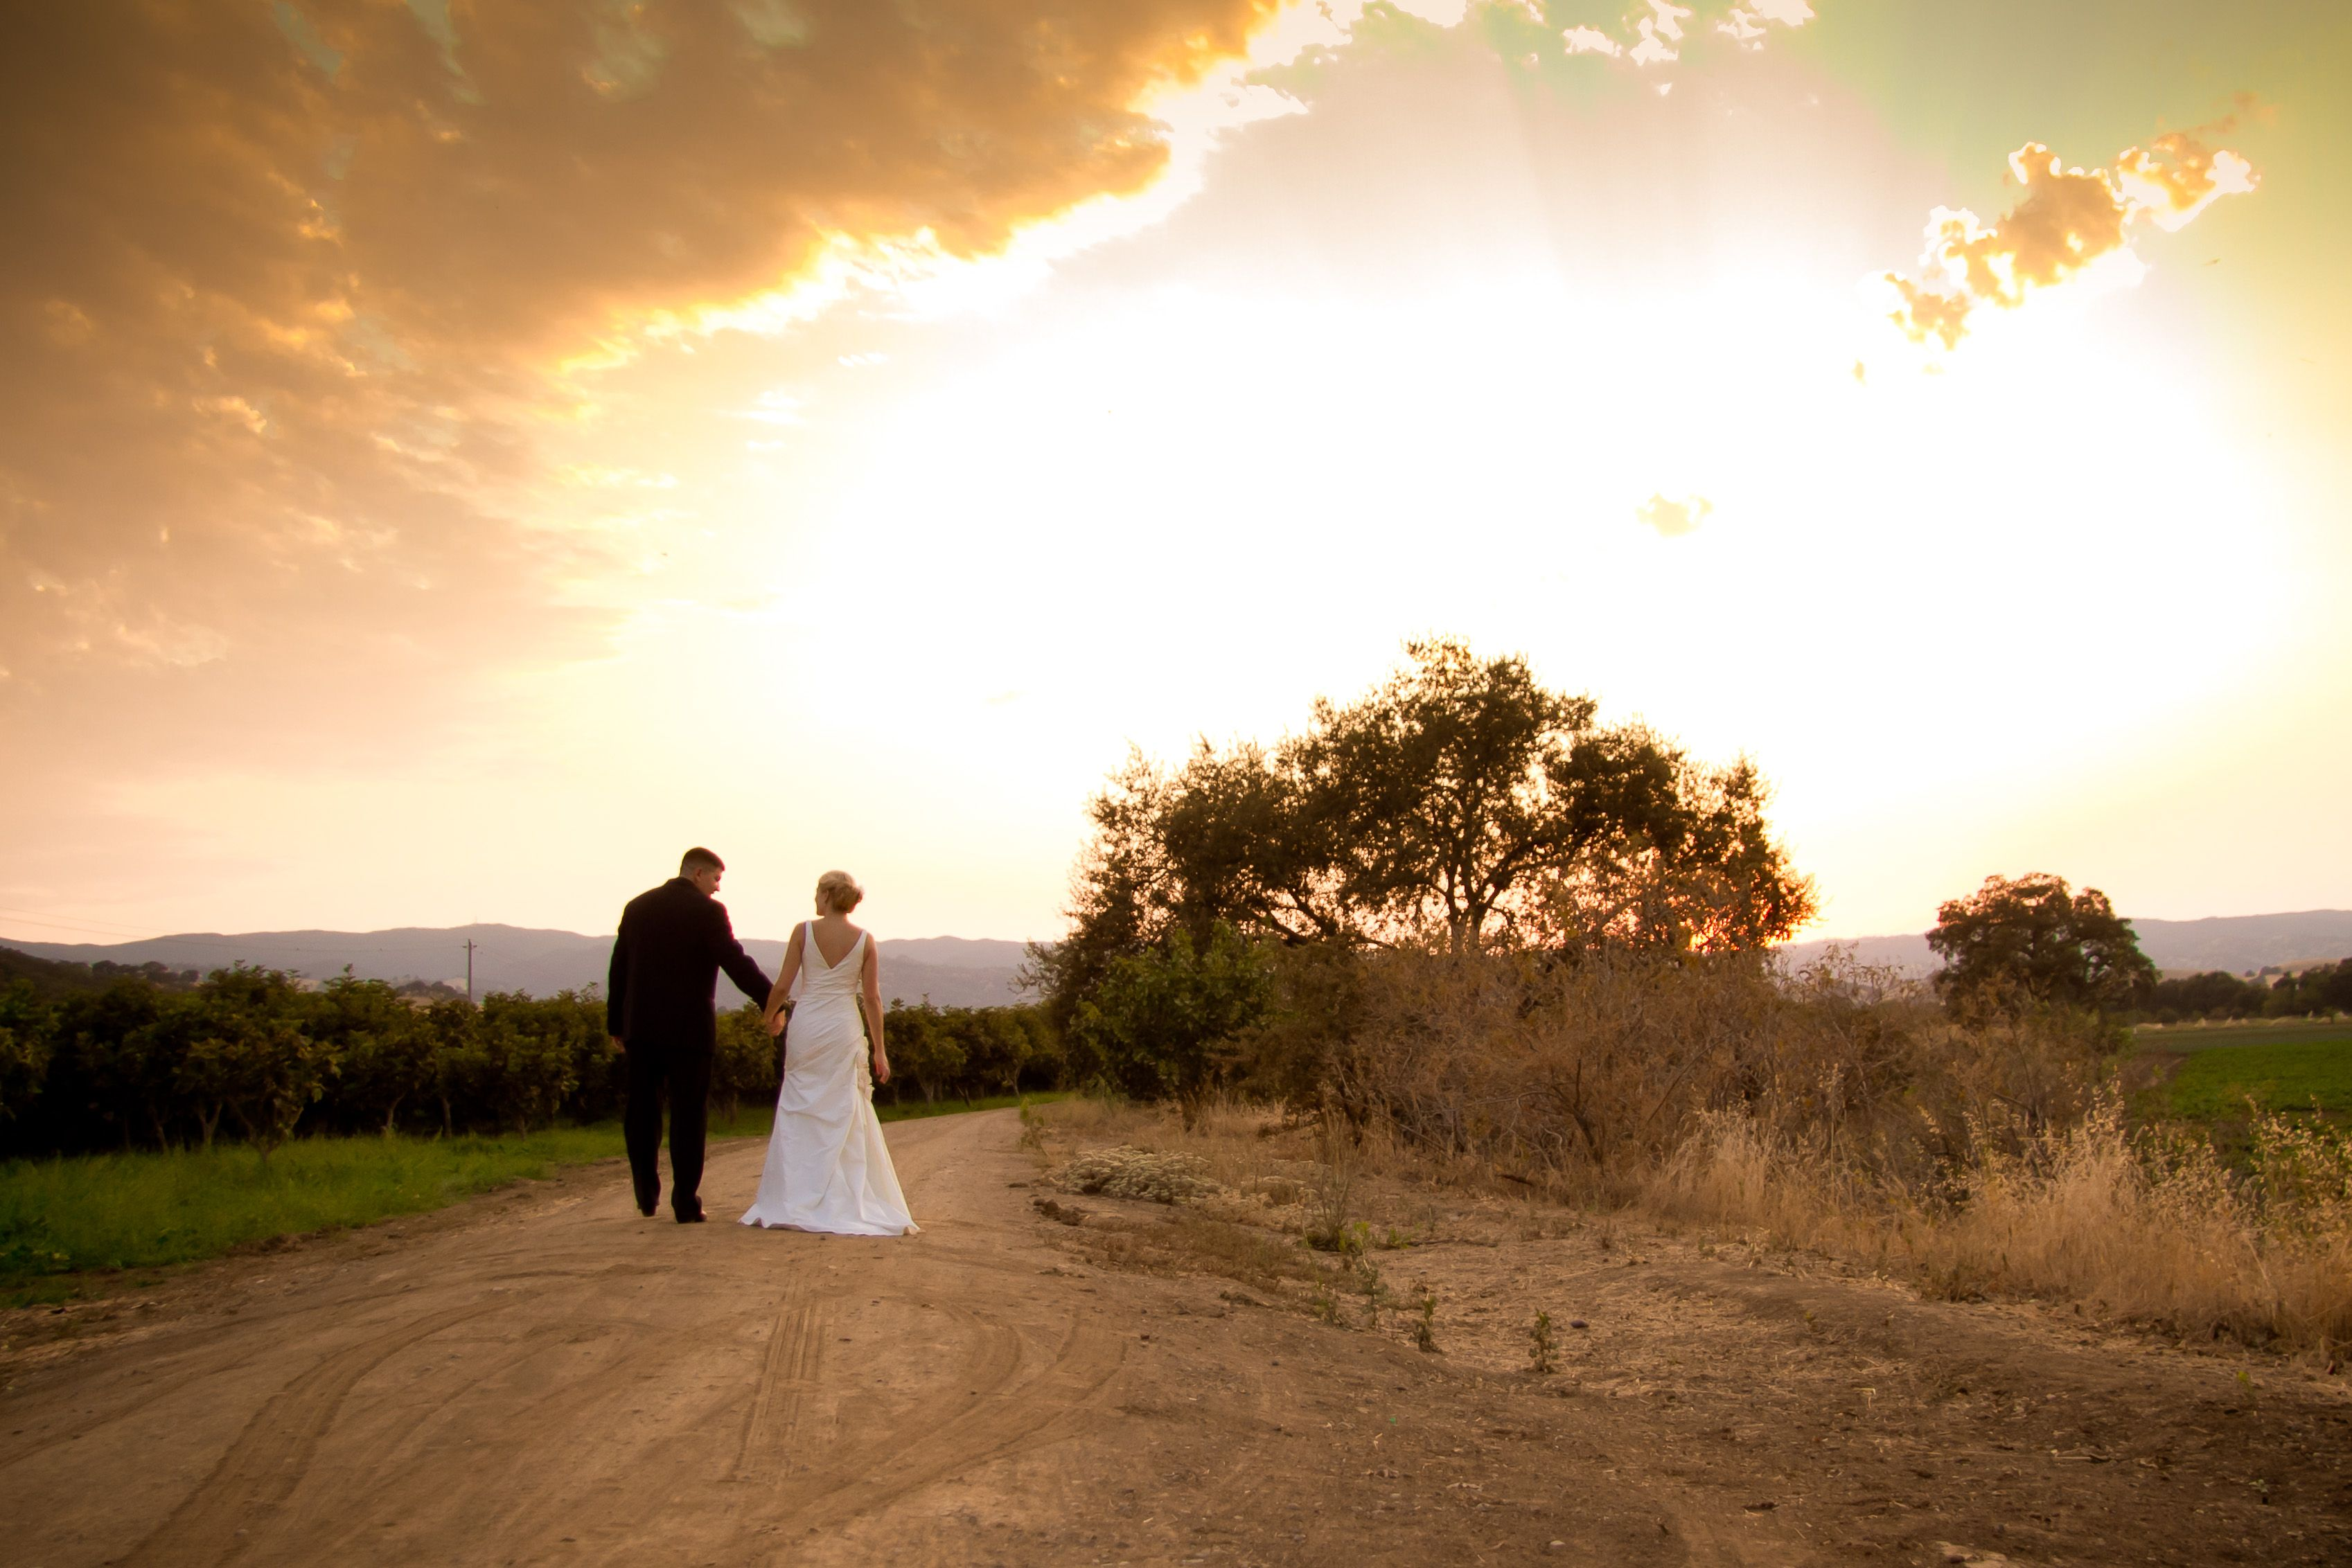 Get married on an organic farm in the beautiful Capay Valley. This 400 acre farm grows over 60 varieties of organic fruits and vegetables. Weddings are held along an oak-tree & lavender-lined, grassy plateau overlooking fields of fruits, vegetables, & orchards.